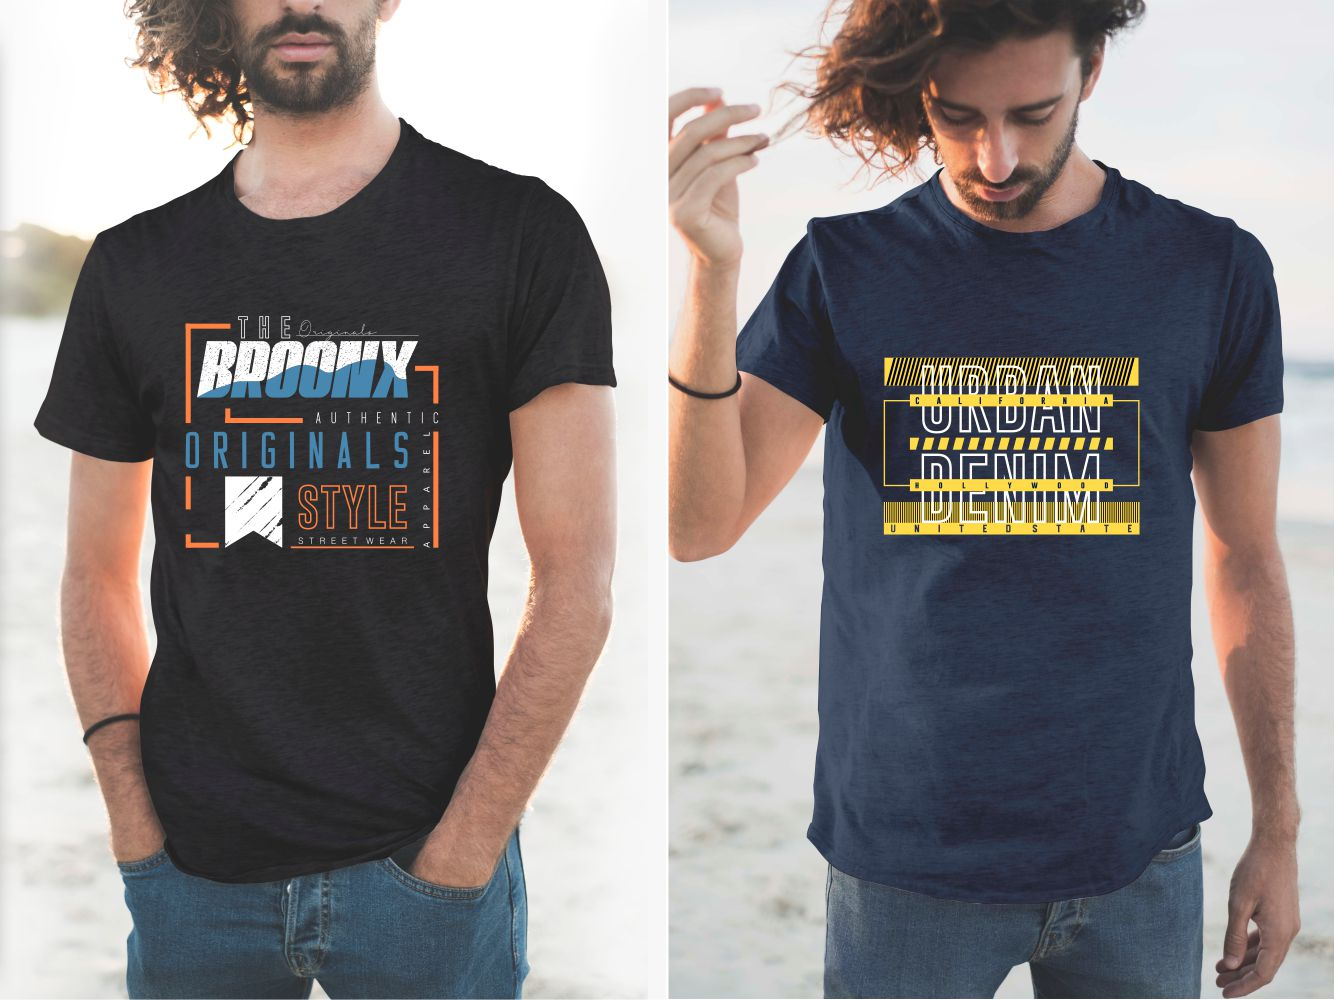 T-shirts with stylish, linear design and modern font.